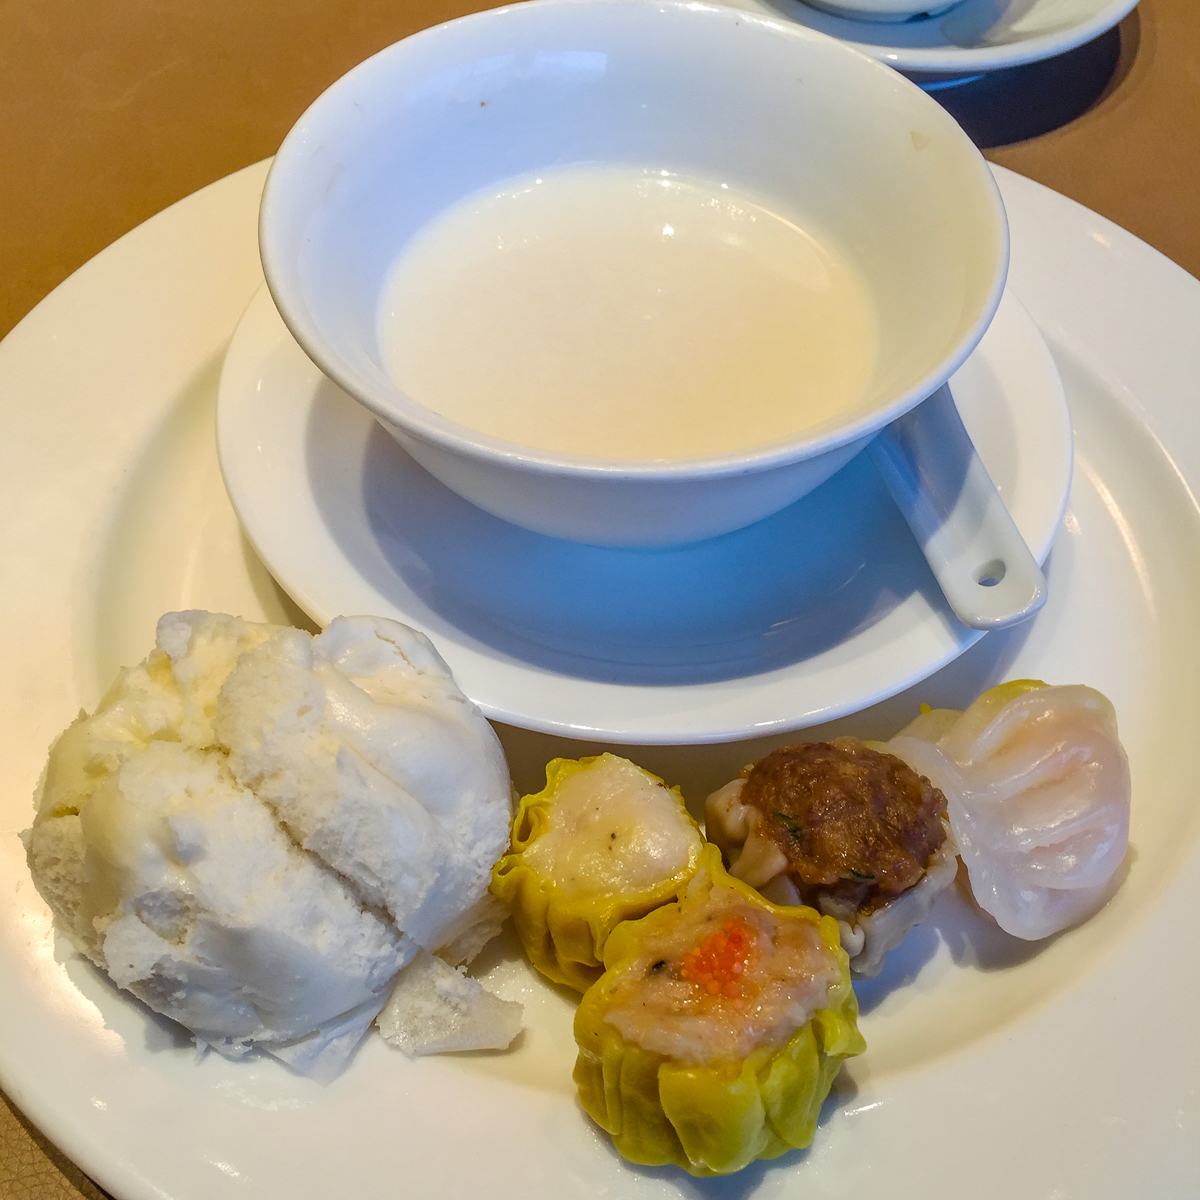 Plain congee and dim sum